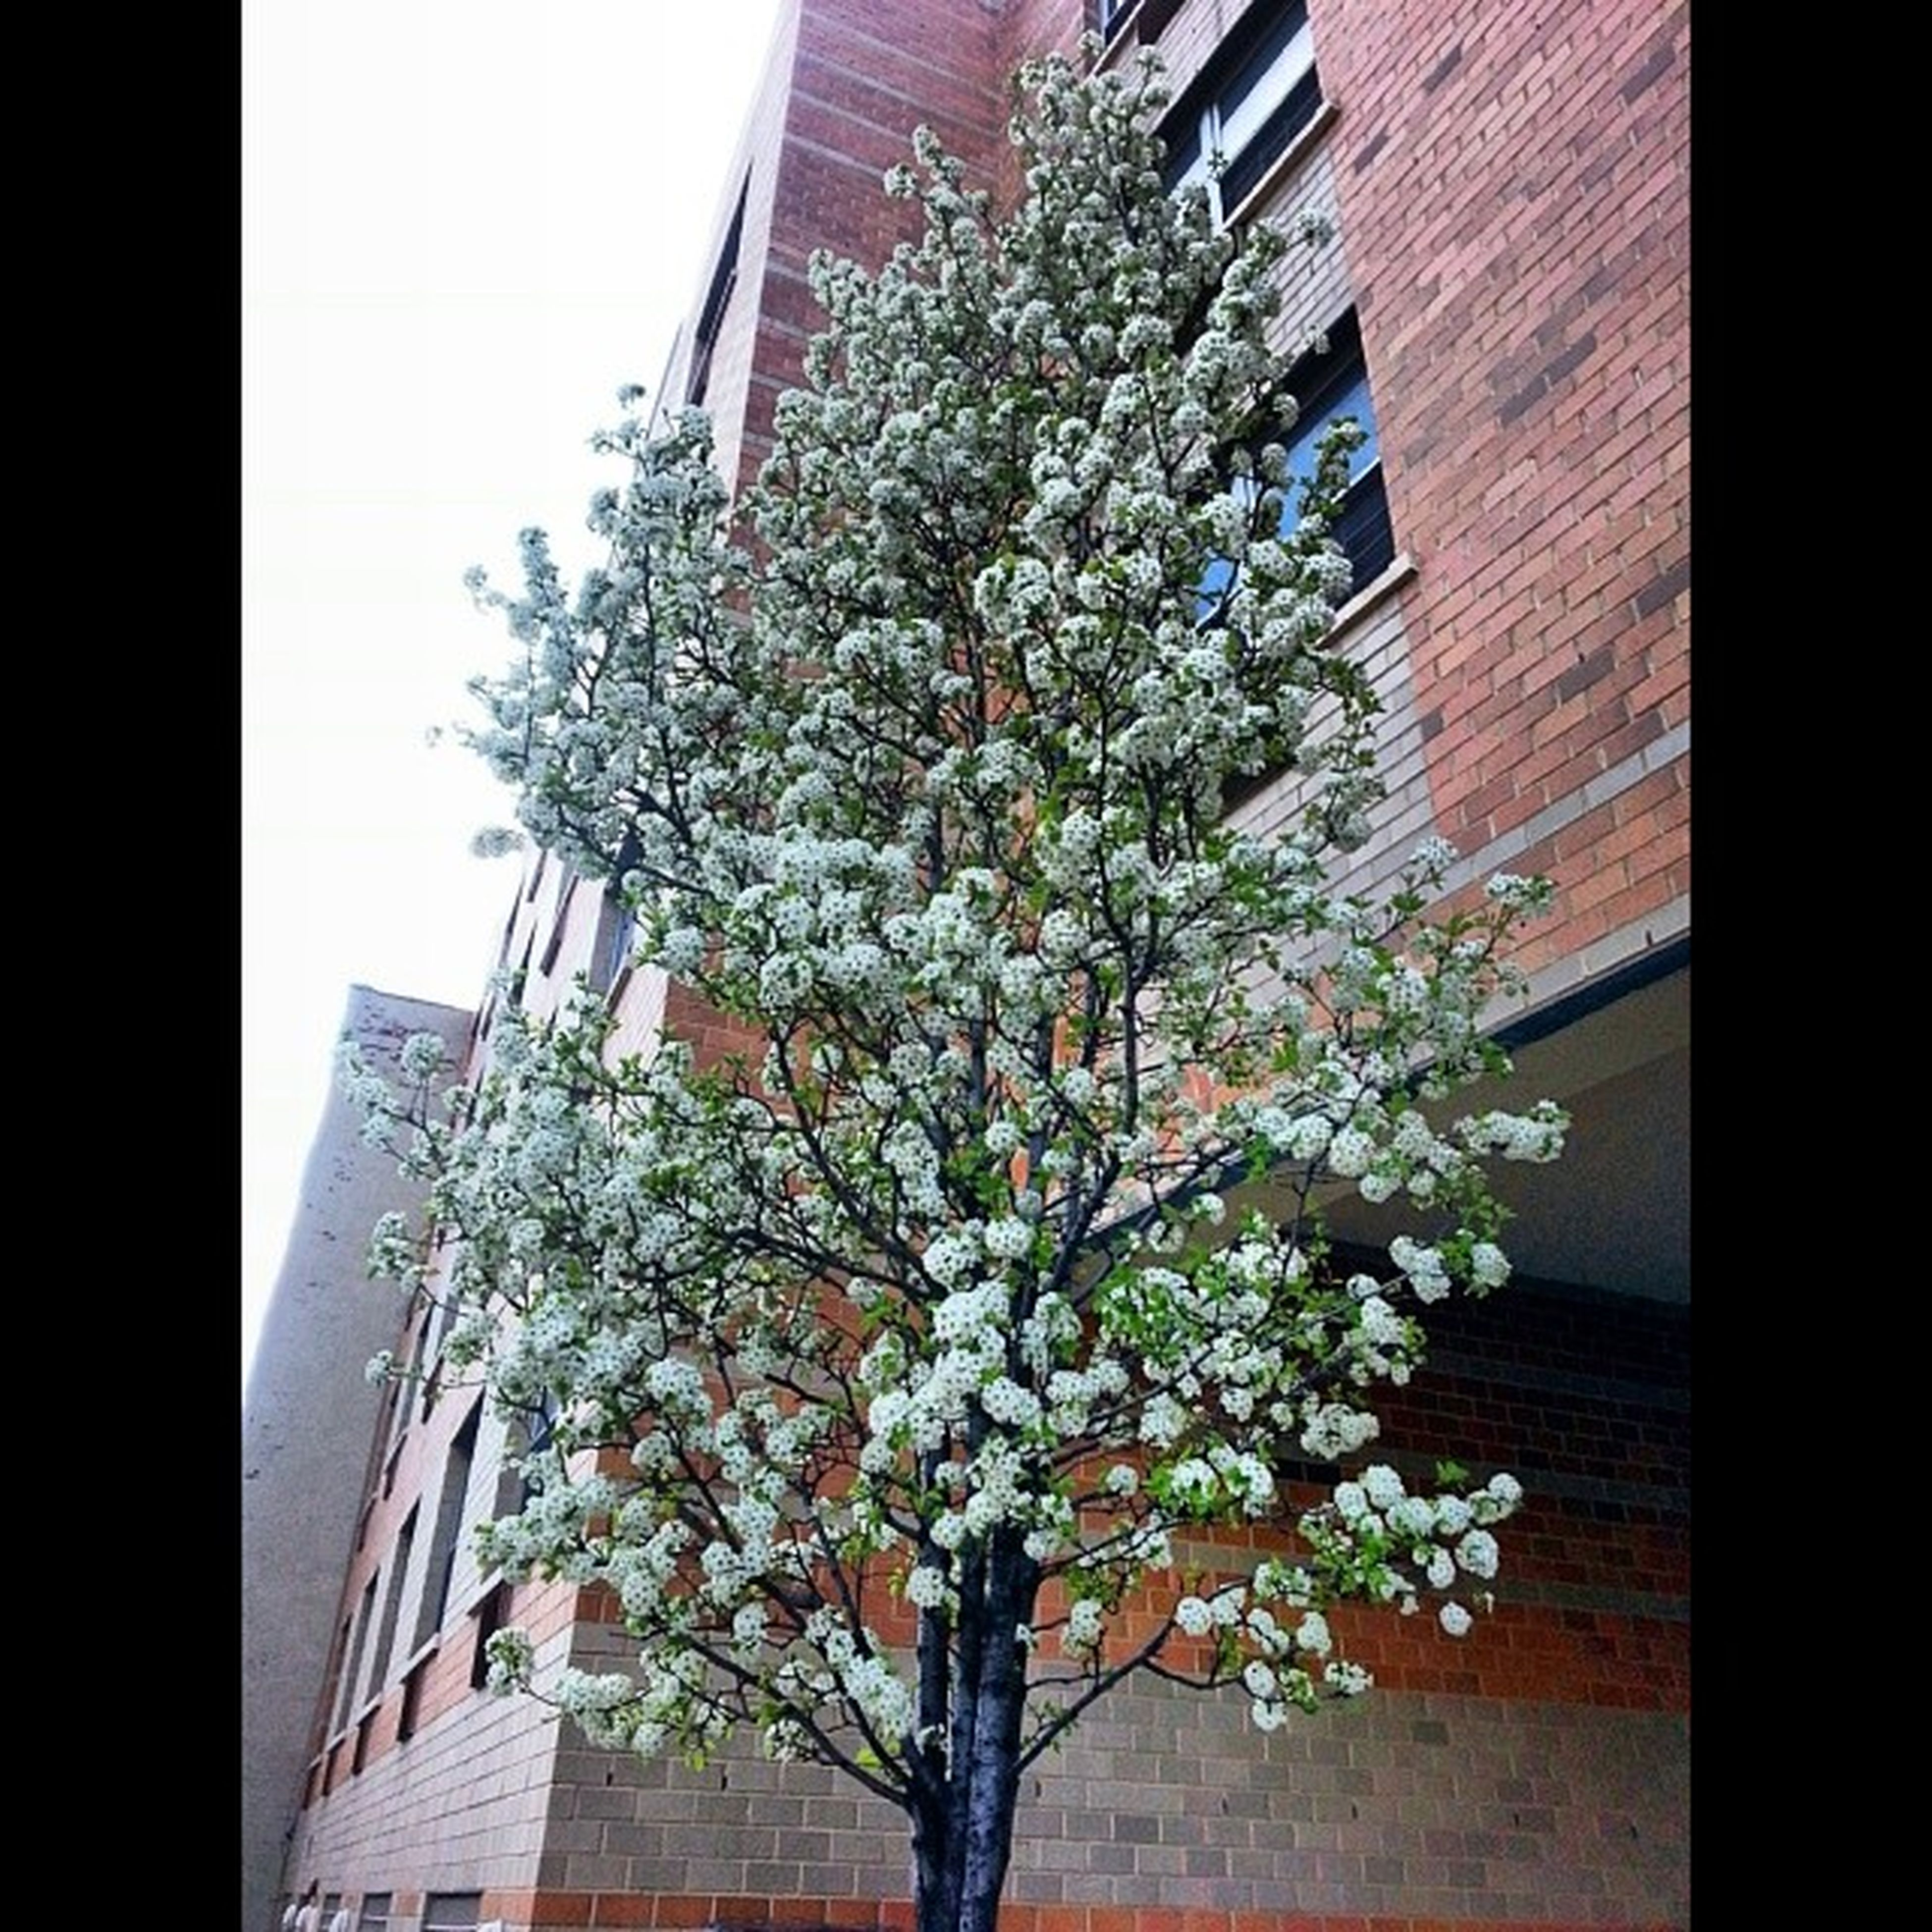 building exterior, architecture, flower, low angle view, built structure, growth, tree, branch, freshness, clear sky, nature, house, blossom, fragility, sky, residential building, day, no people, outdoors, residential structure